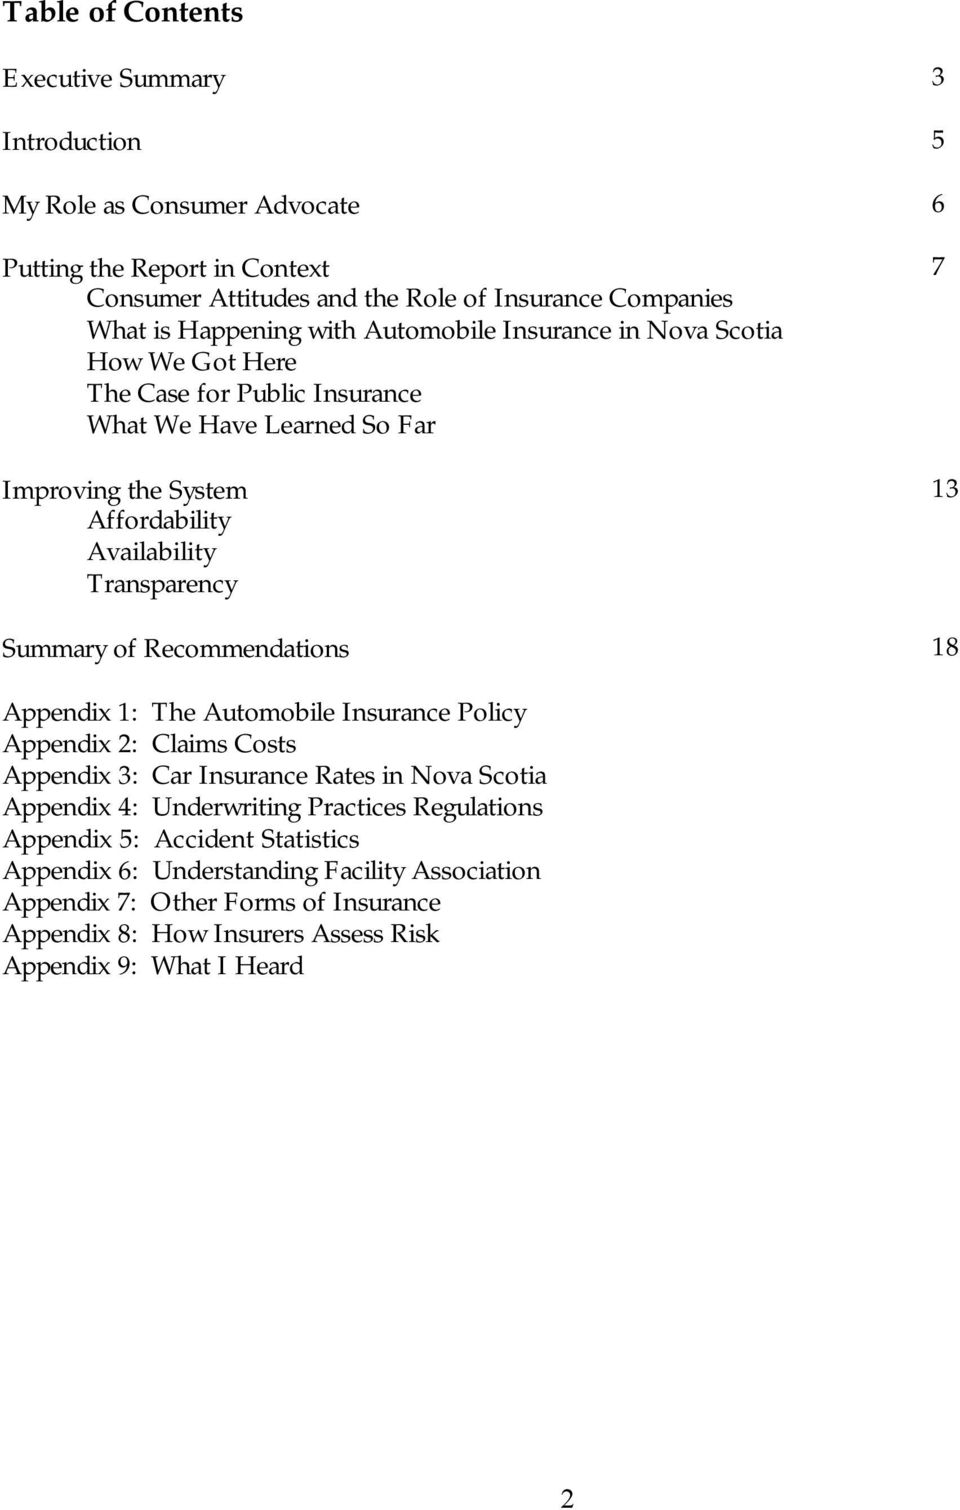 Transparency Summary of Recommendations 18 Appendix 1: The Automobile Insurance Policy Appendix 2: Claims Costs Appendix 3: Car Insurance Rates in Nova Scotia Appendix 4: Underwriting